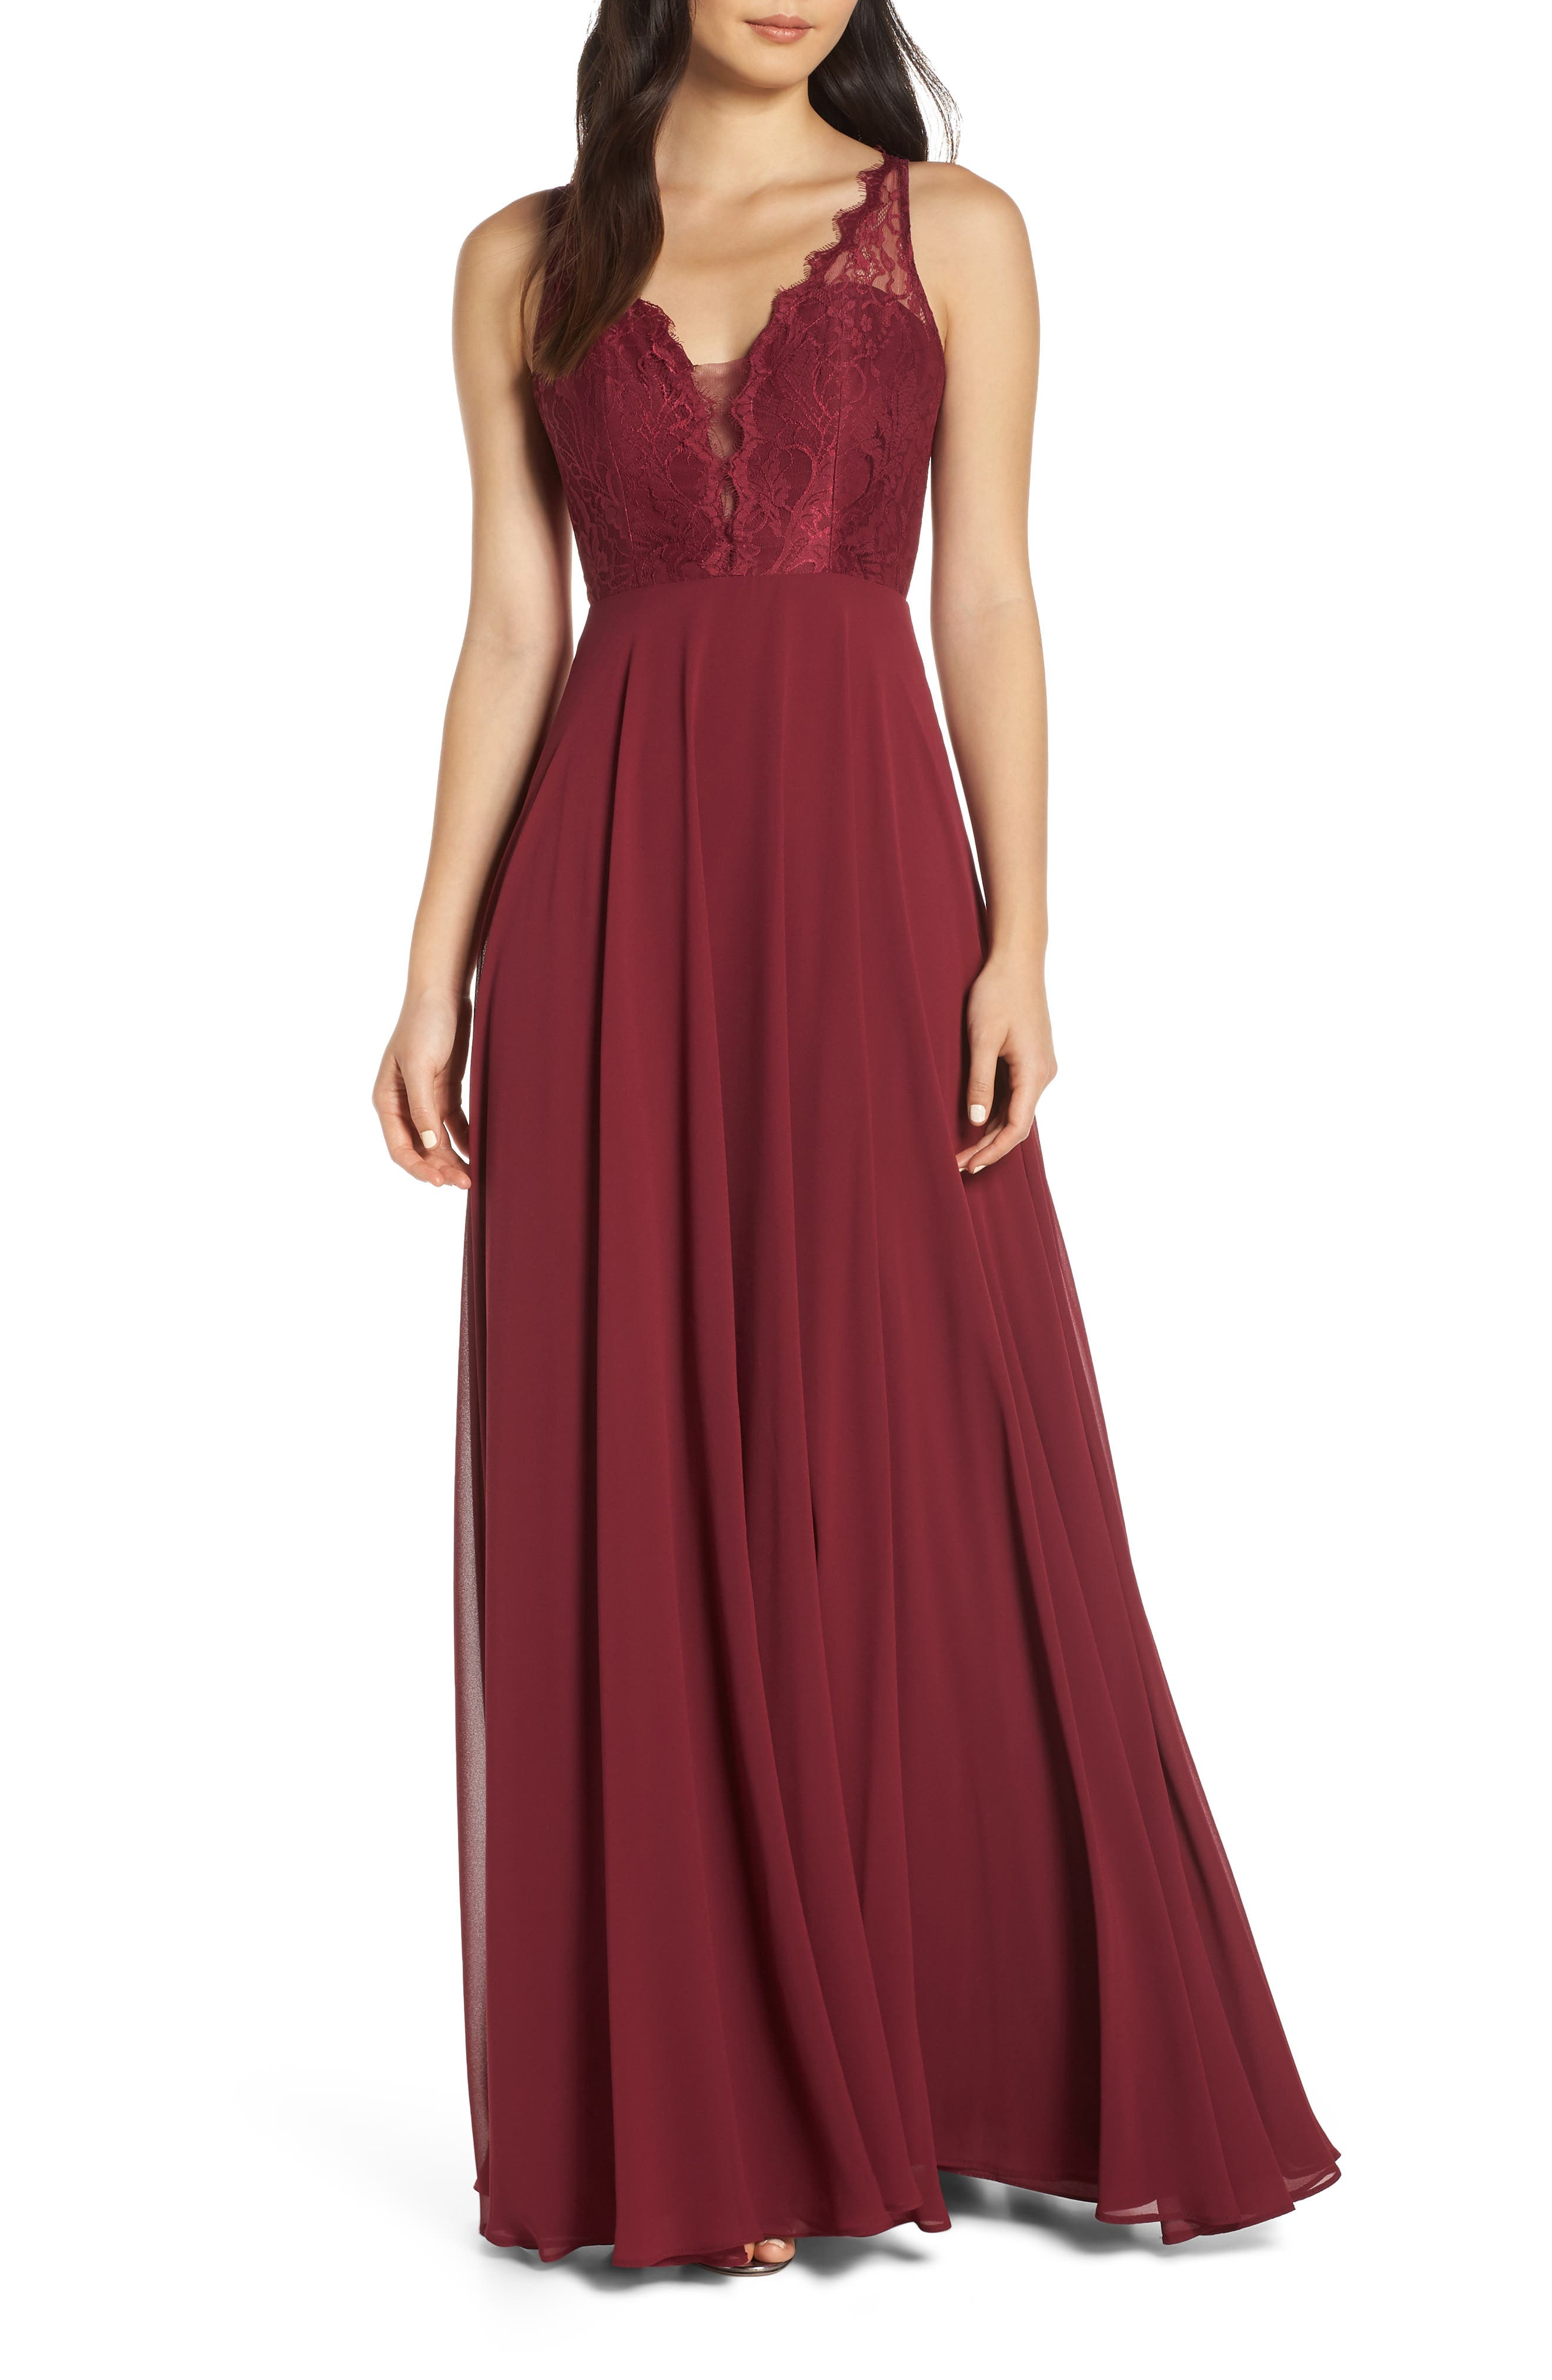 Hayley Paige Occasions Lace Bodice Chiffon Evening Dress, Burgundy